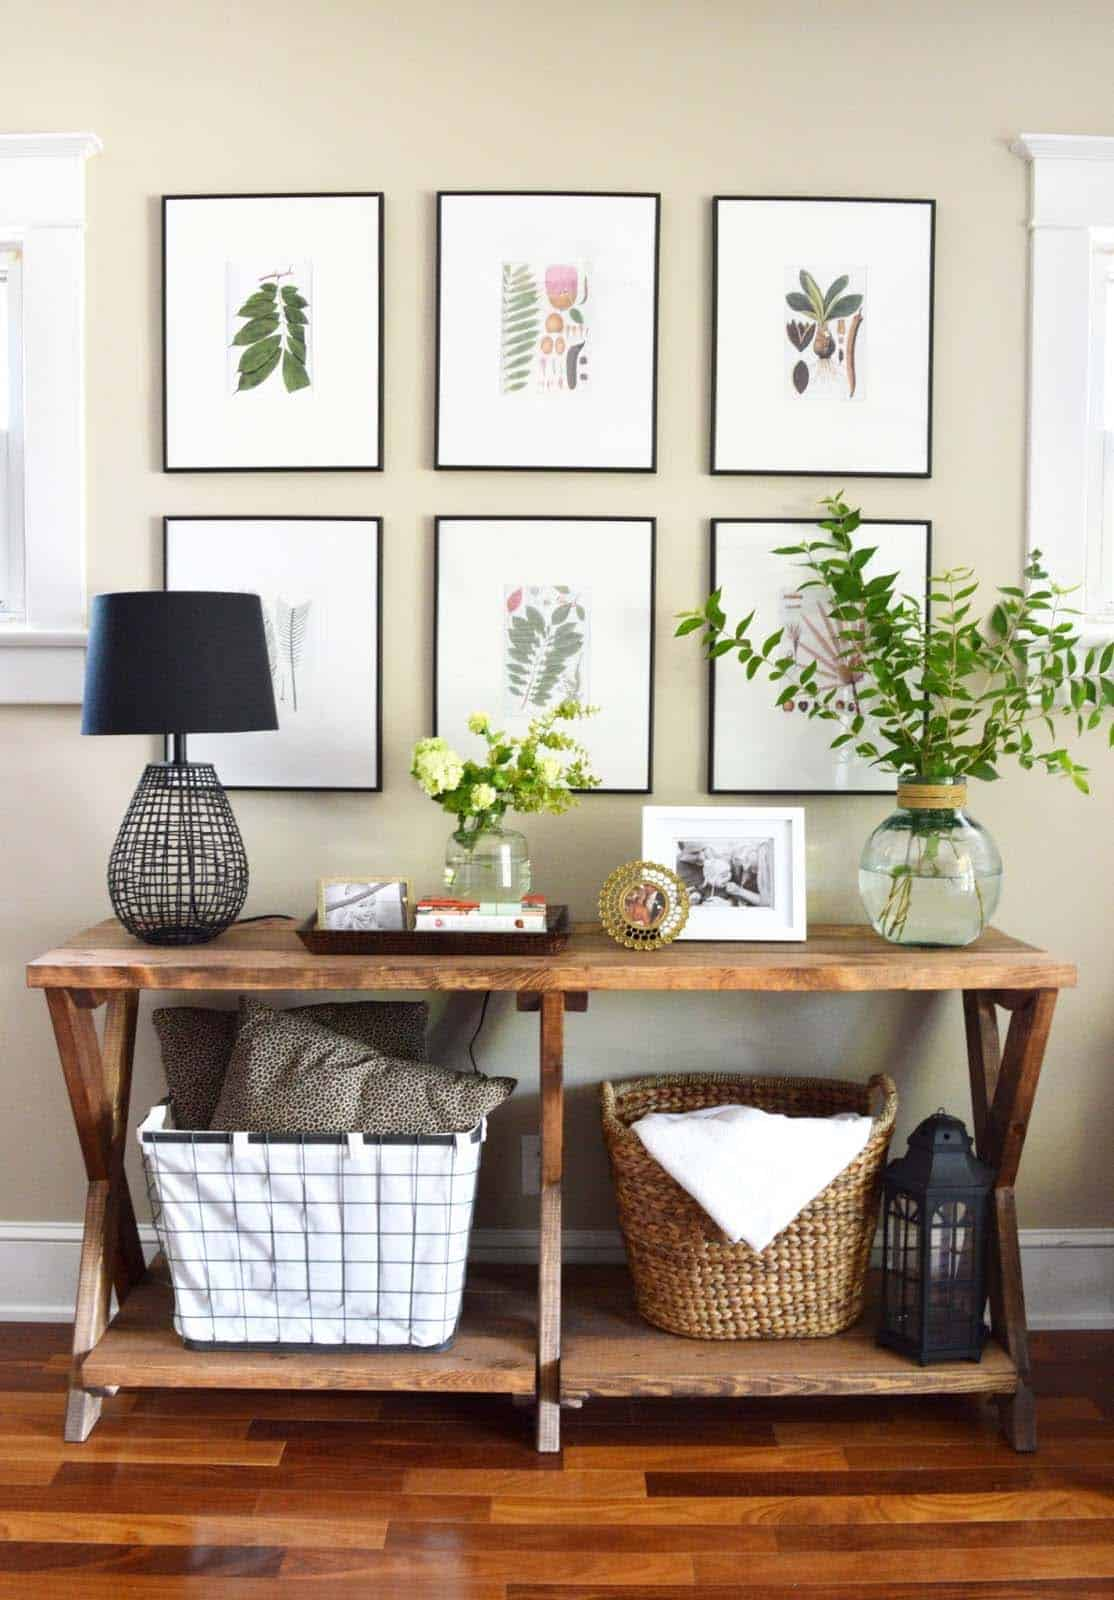 Ideas For Styling Living Spaces For Spring-12-1 Kindesign